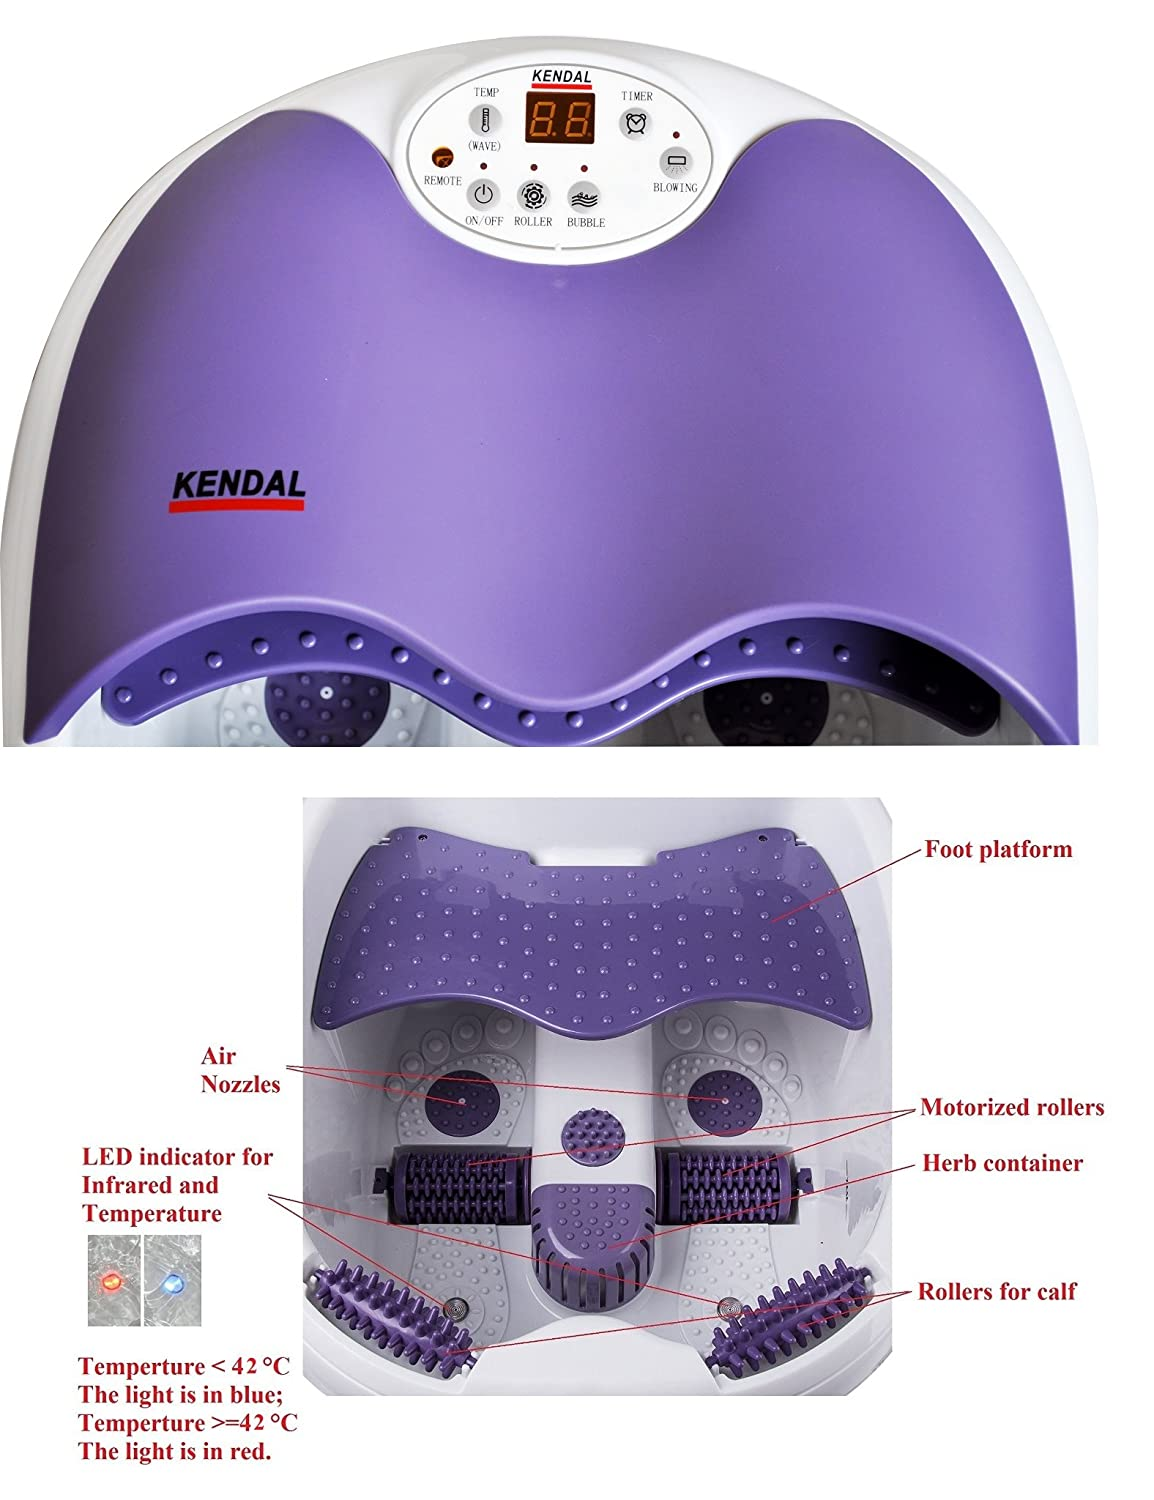 Amazon.com: All in one foot spa bath massager w/ motorized rolling ...